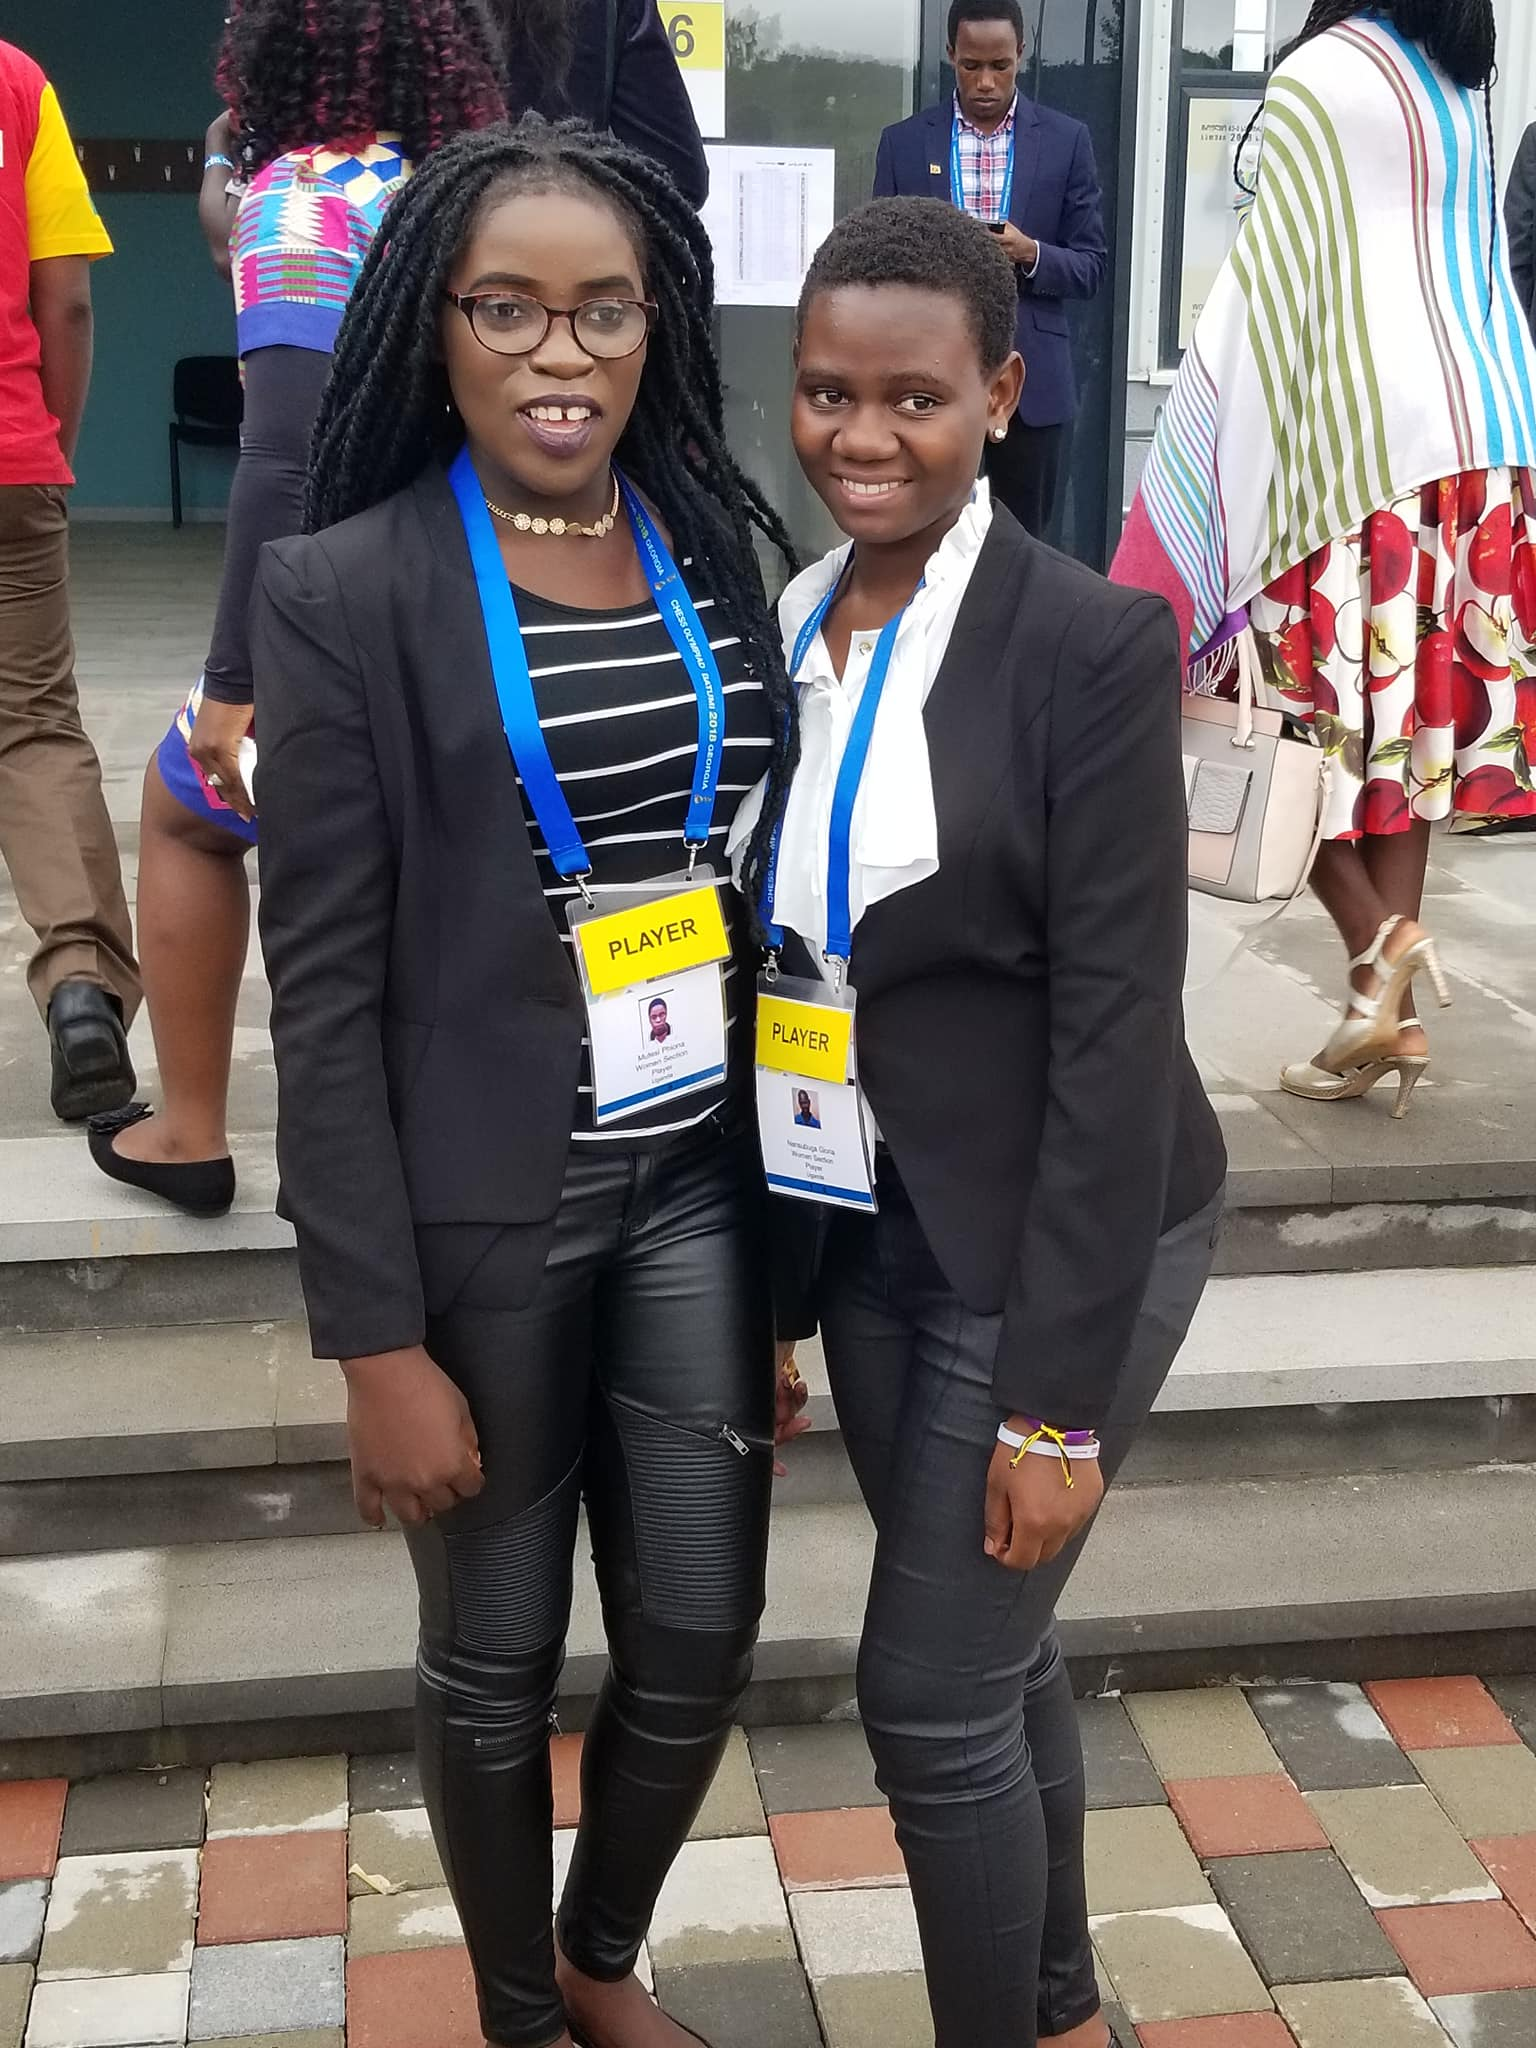 At five years old, Gloria Nansubuga (pictured right) taught Phiona Mutesi (pictured left) how to play chess. Now they are teammates in the World Chess Olympiad.